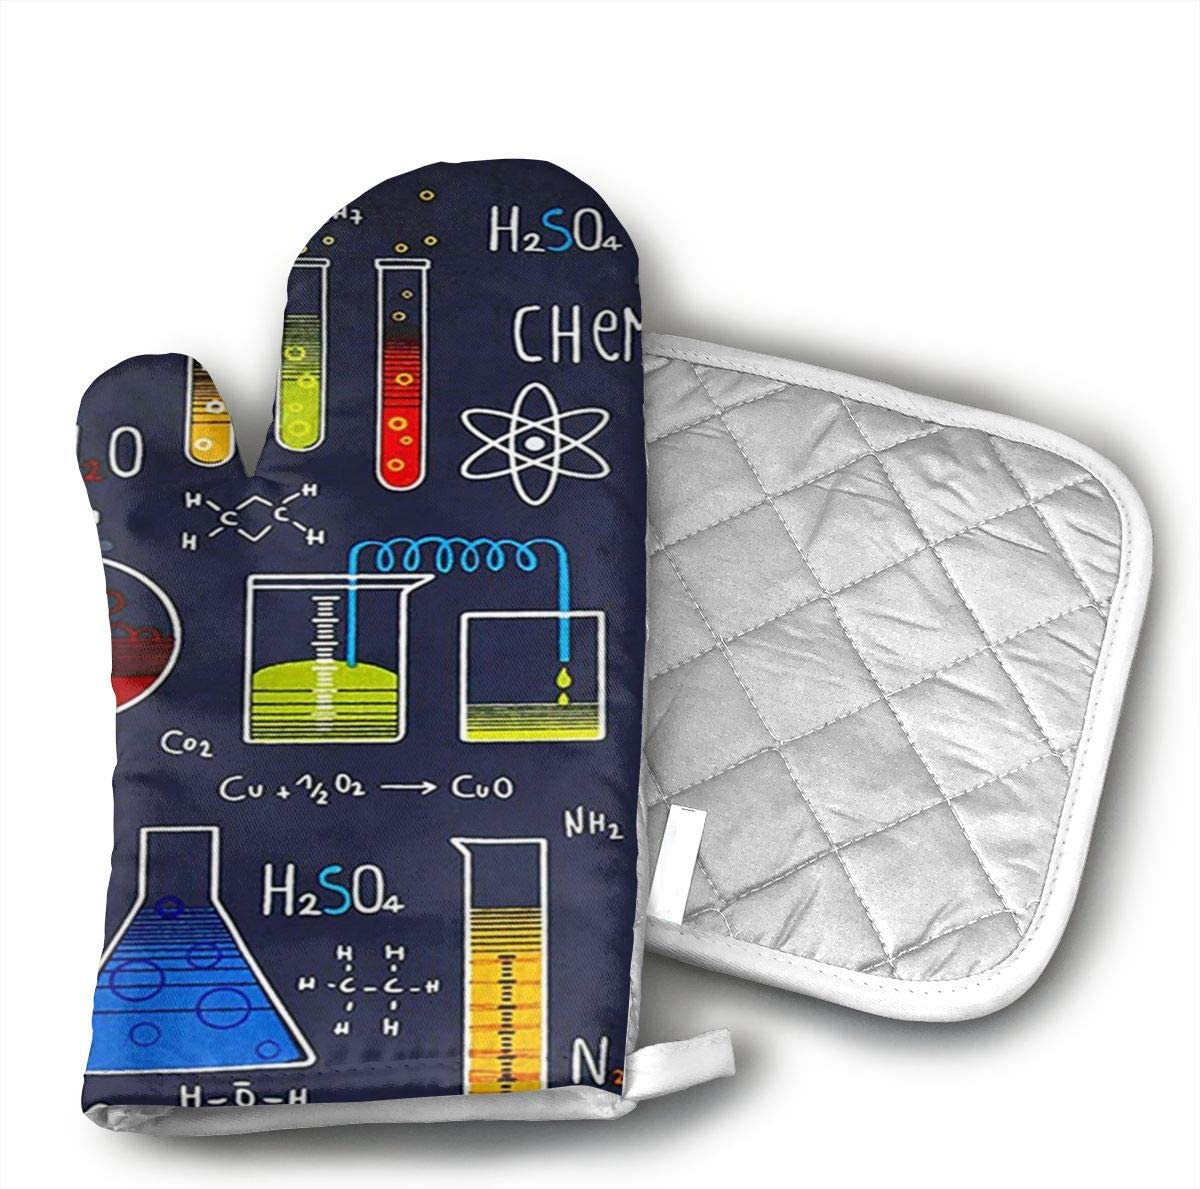 Wiqo9 Geek Chic Large Allover Navy Oven Mitts and Pot Holders Kitchen Mitten Cooking Gloves,Cooking, Baking, BBQ.